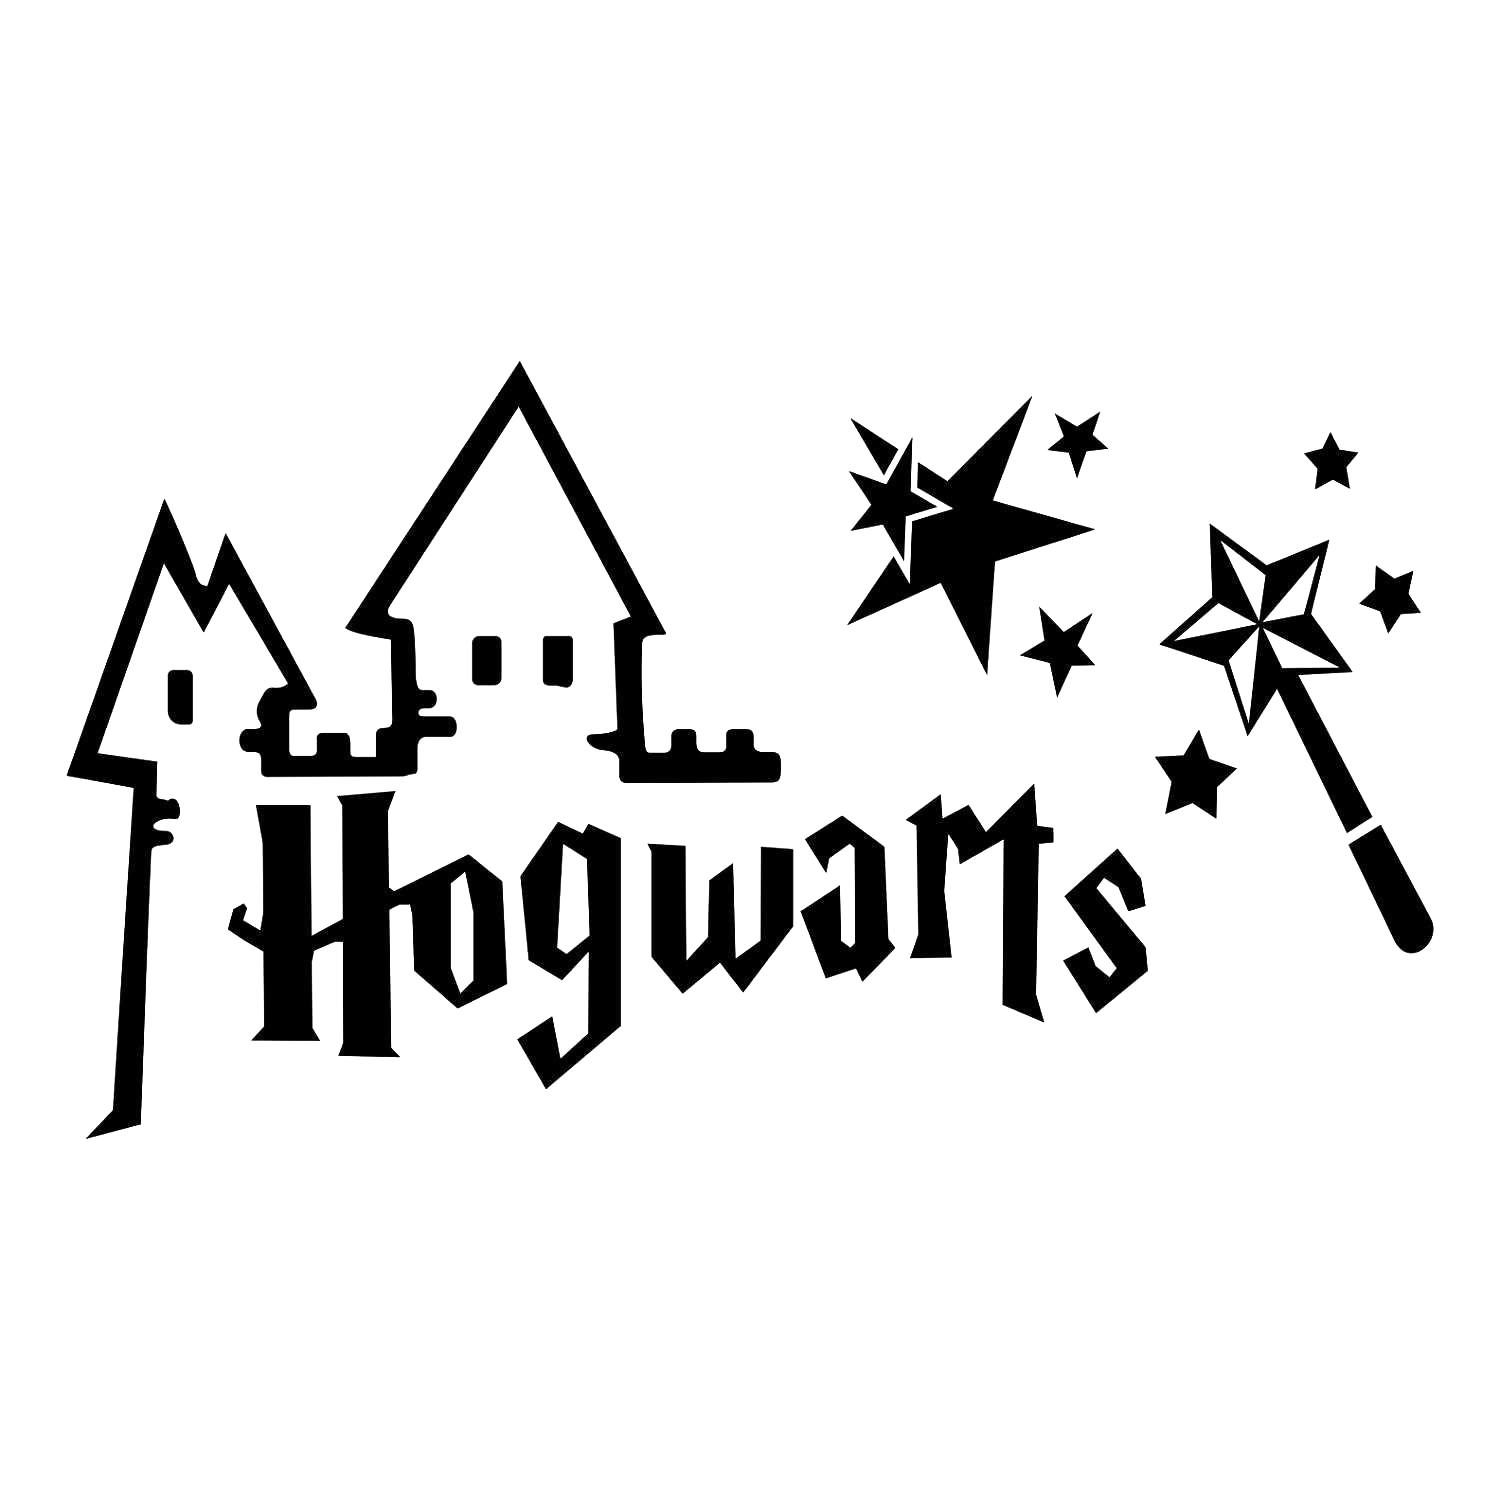 Hogwarts school of witchcraft and wizardry font clipart image stock Harry Potter and the Deathly Hallows Hogwarts School of ... image stock